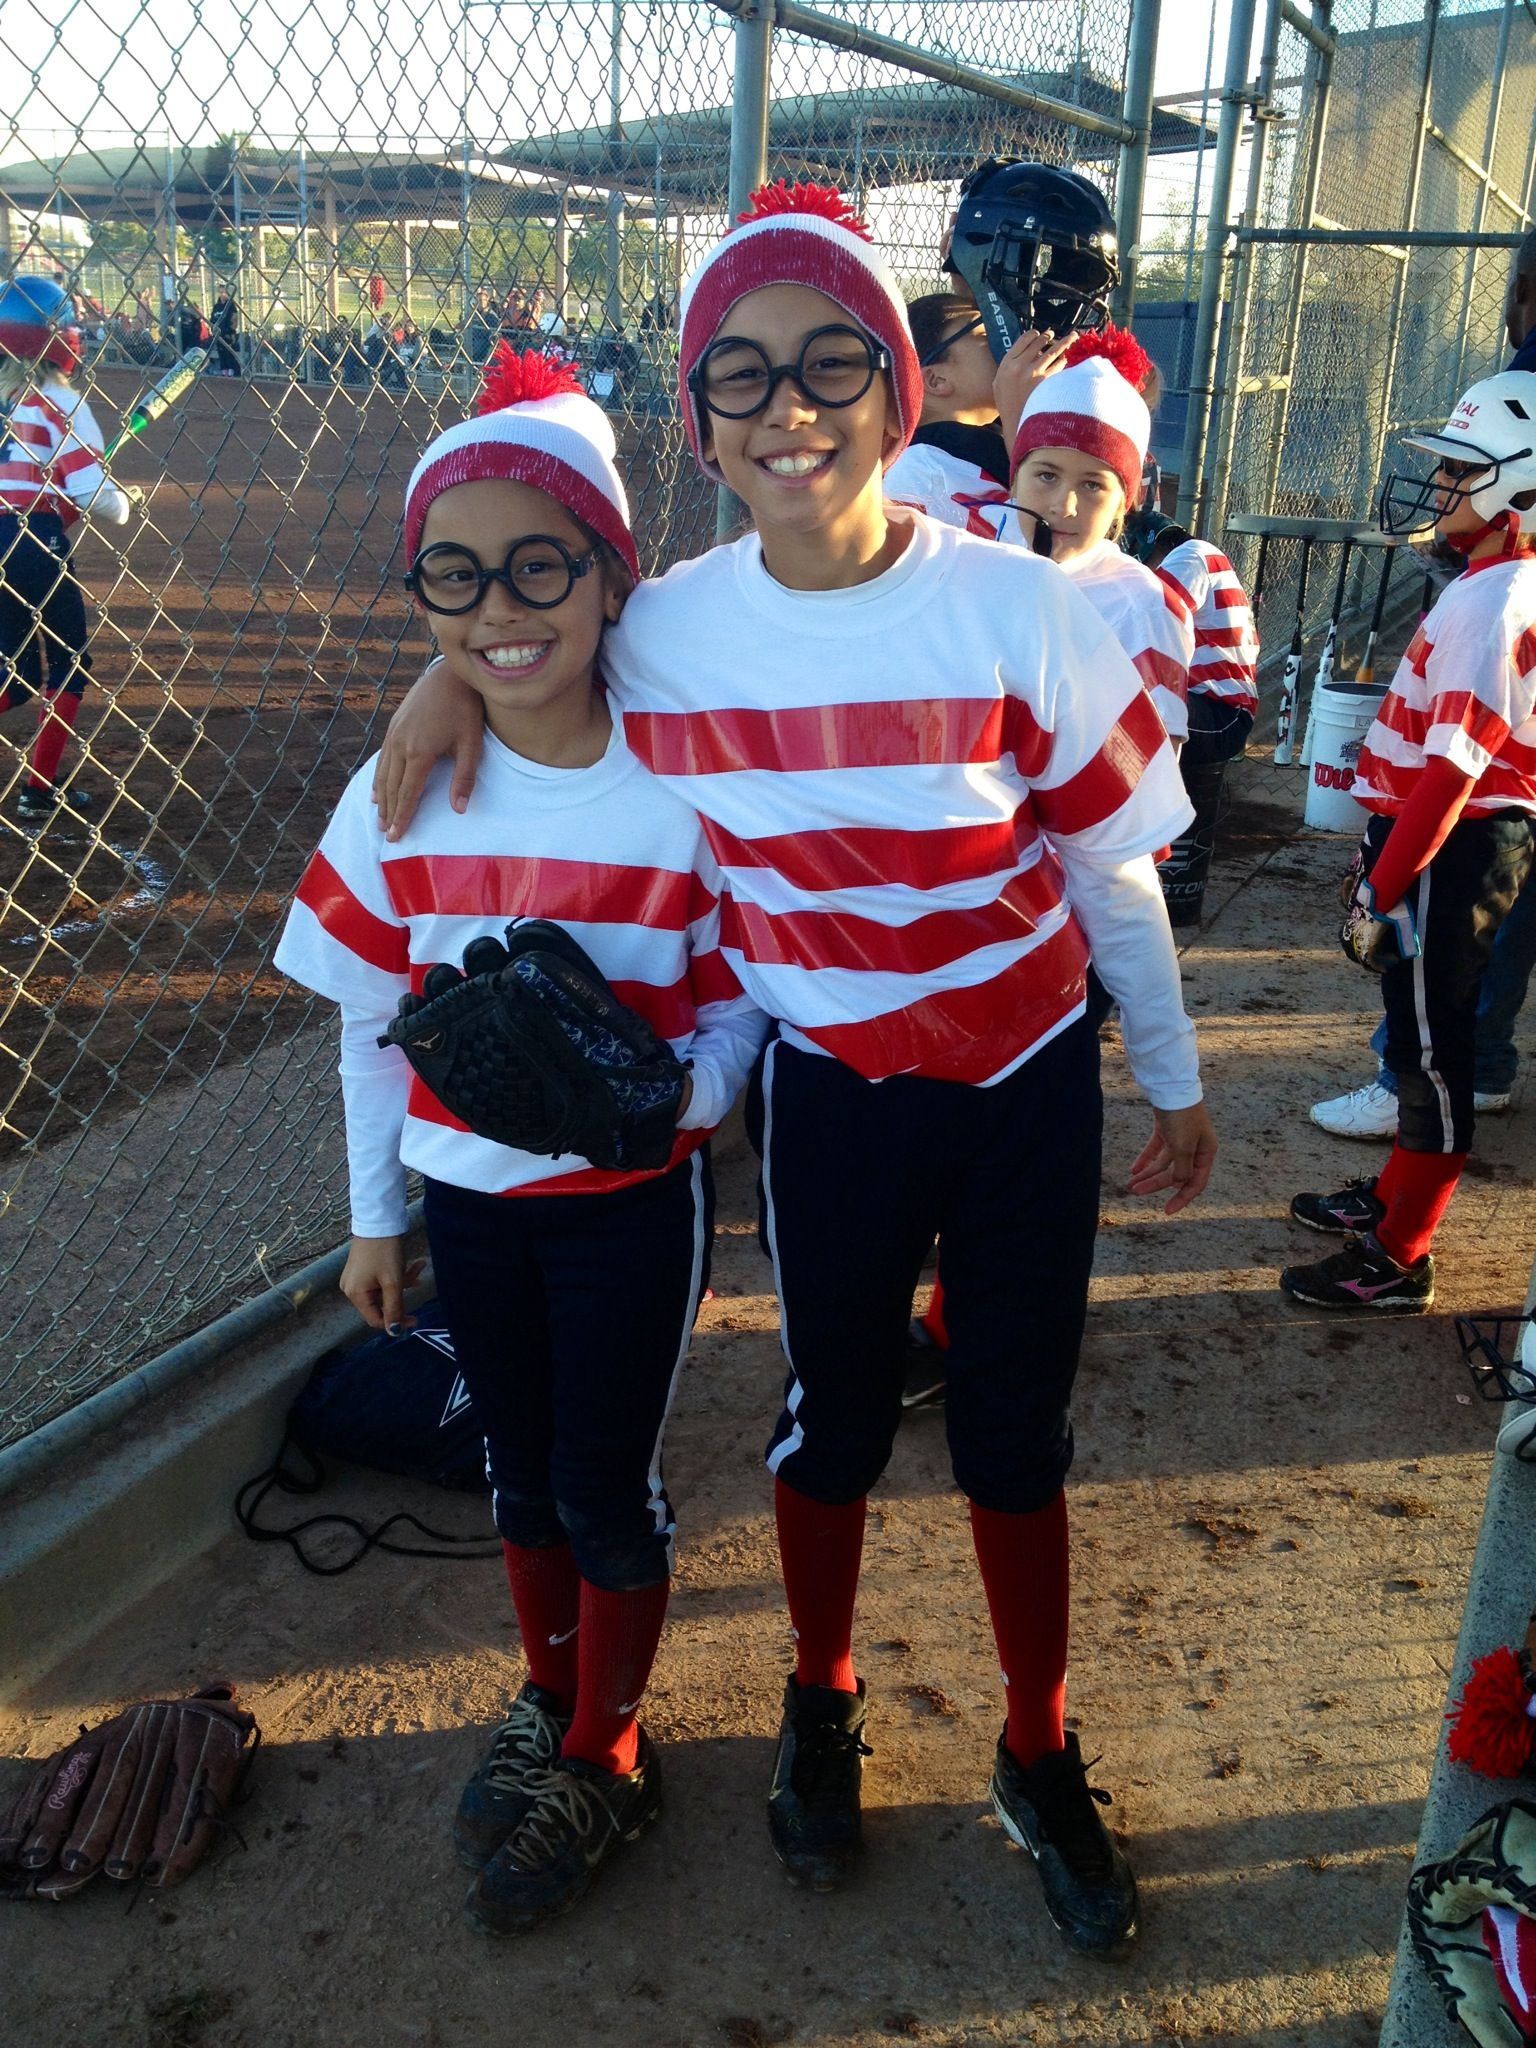 Softball team Halloween costume- Whereu0027s Waldo. Duct taped plain white Tu0027s added pom-poms to white beanies and painted numbers on the backs of shirts ...  sc 1 st  Pinterest & Softball team Halloween costume- Whereu0027s Waldo. Duct taped plain ...